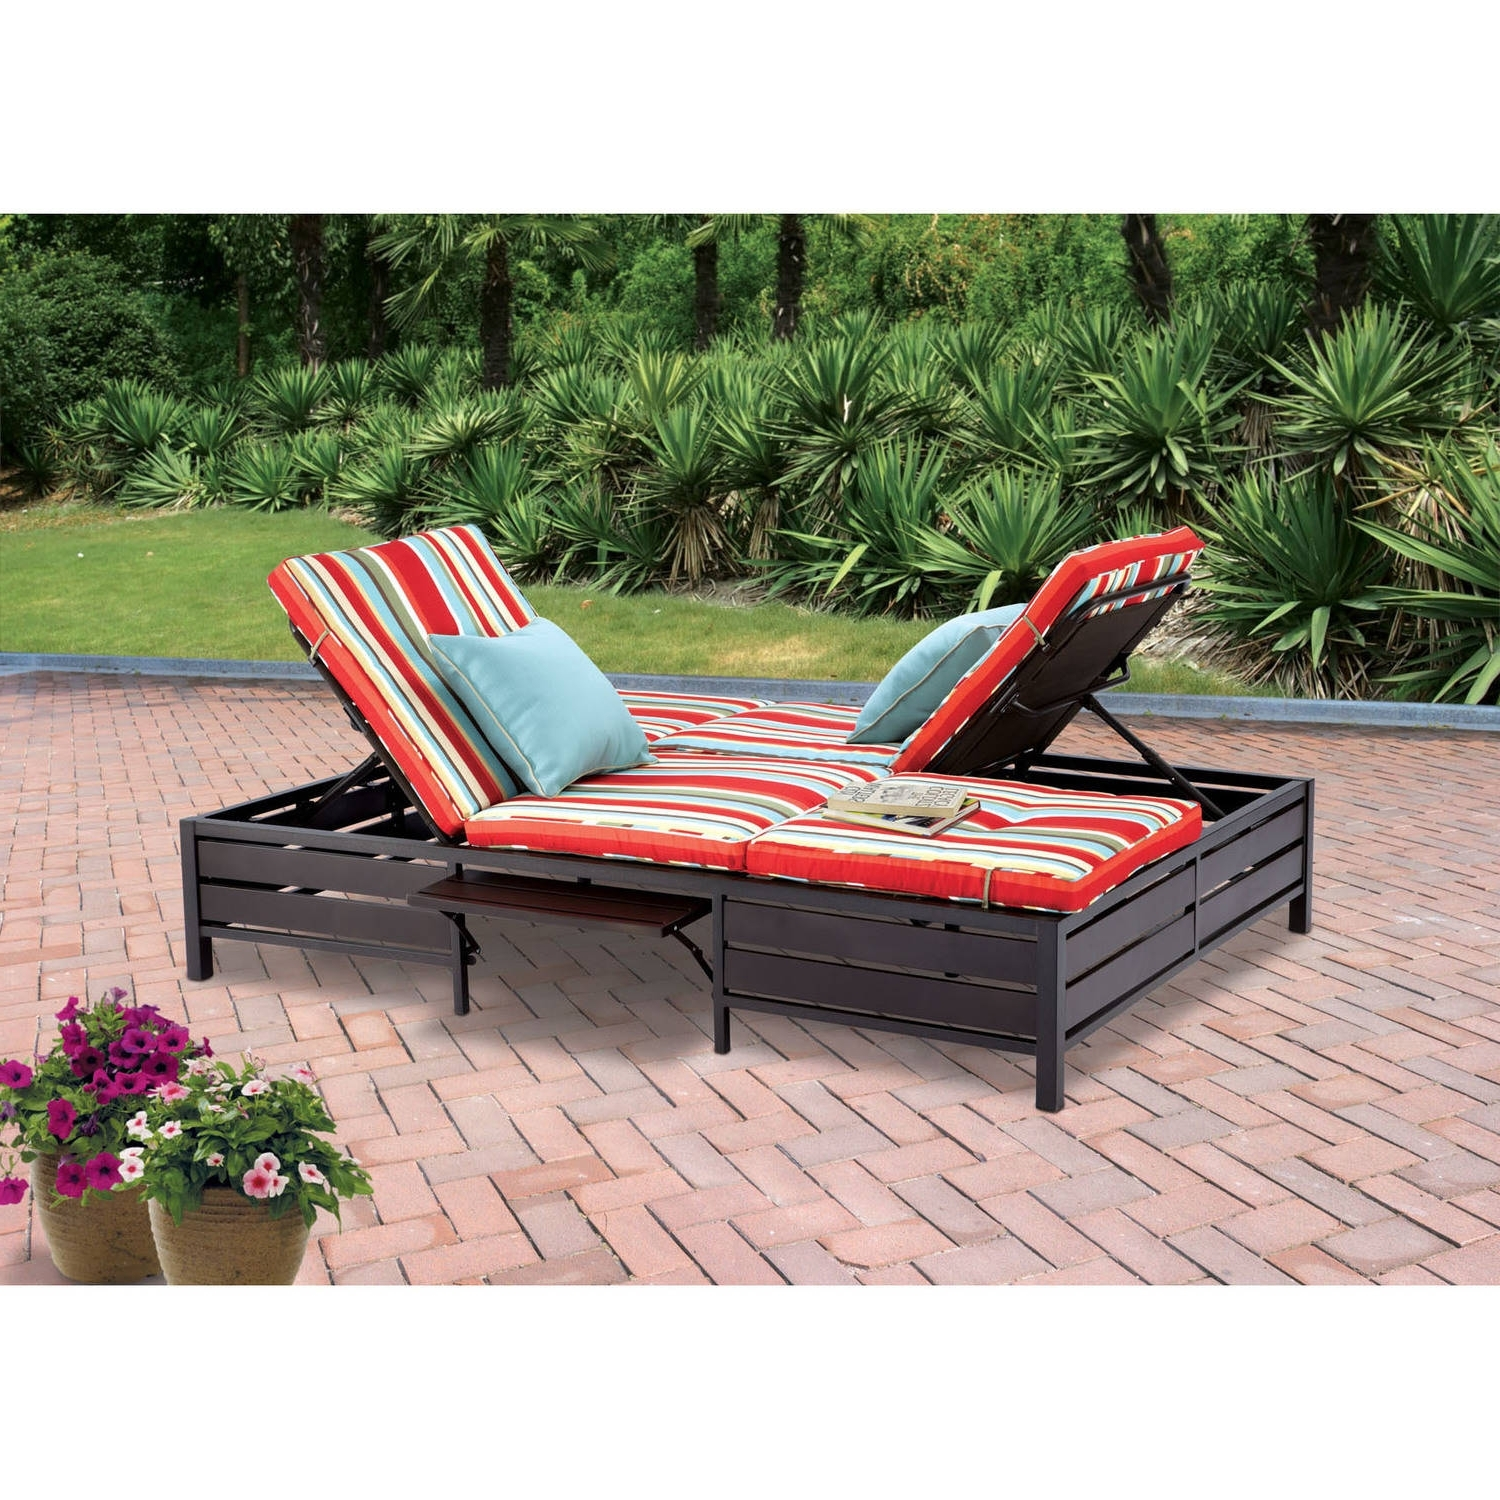 Most Up To Date Mainstays Outdoor Double Chaise Lounger, Stripe, Seats 2 – Walmart In Walmart Outdoor Chaise Lounges (View 8 of 15)